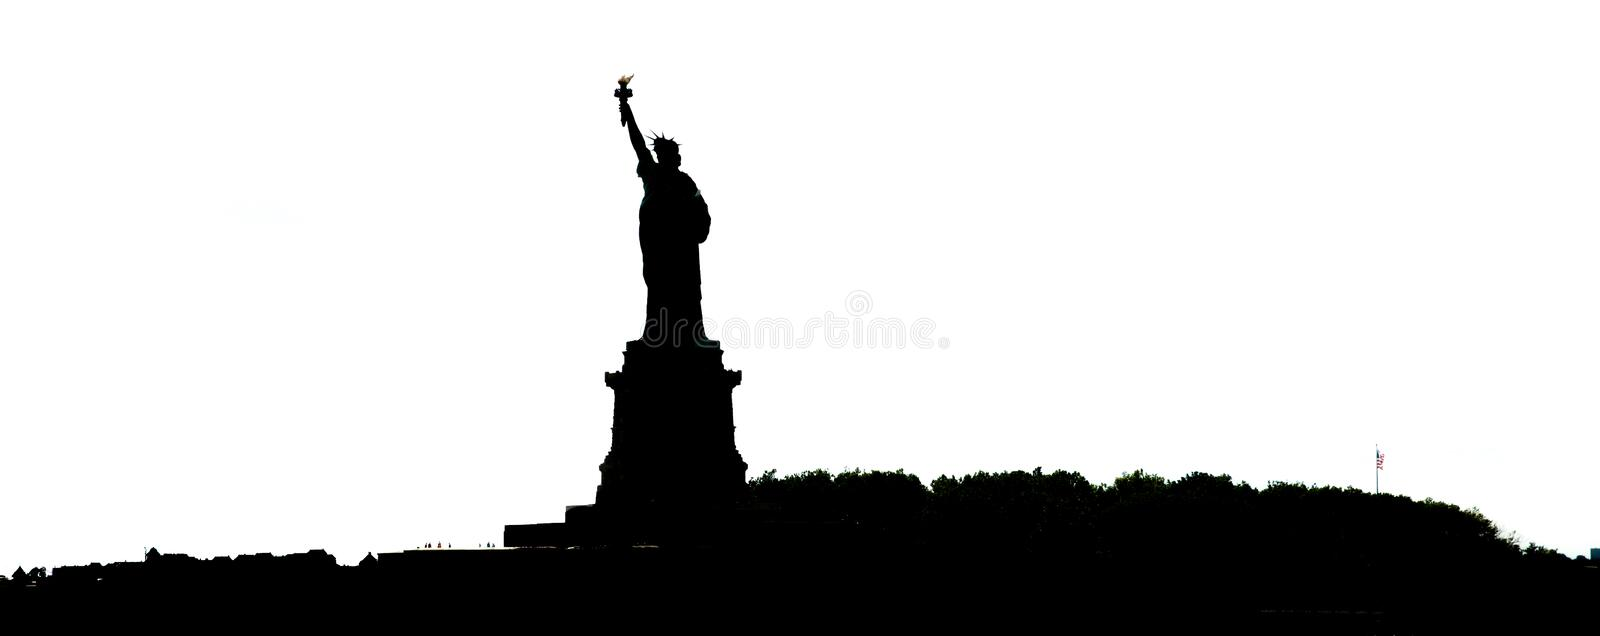 Silhouette of Statue of Liberty in New York City royalty free stock photography